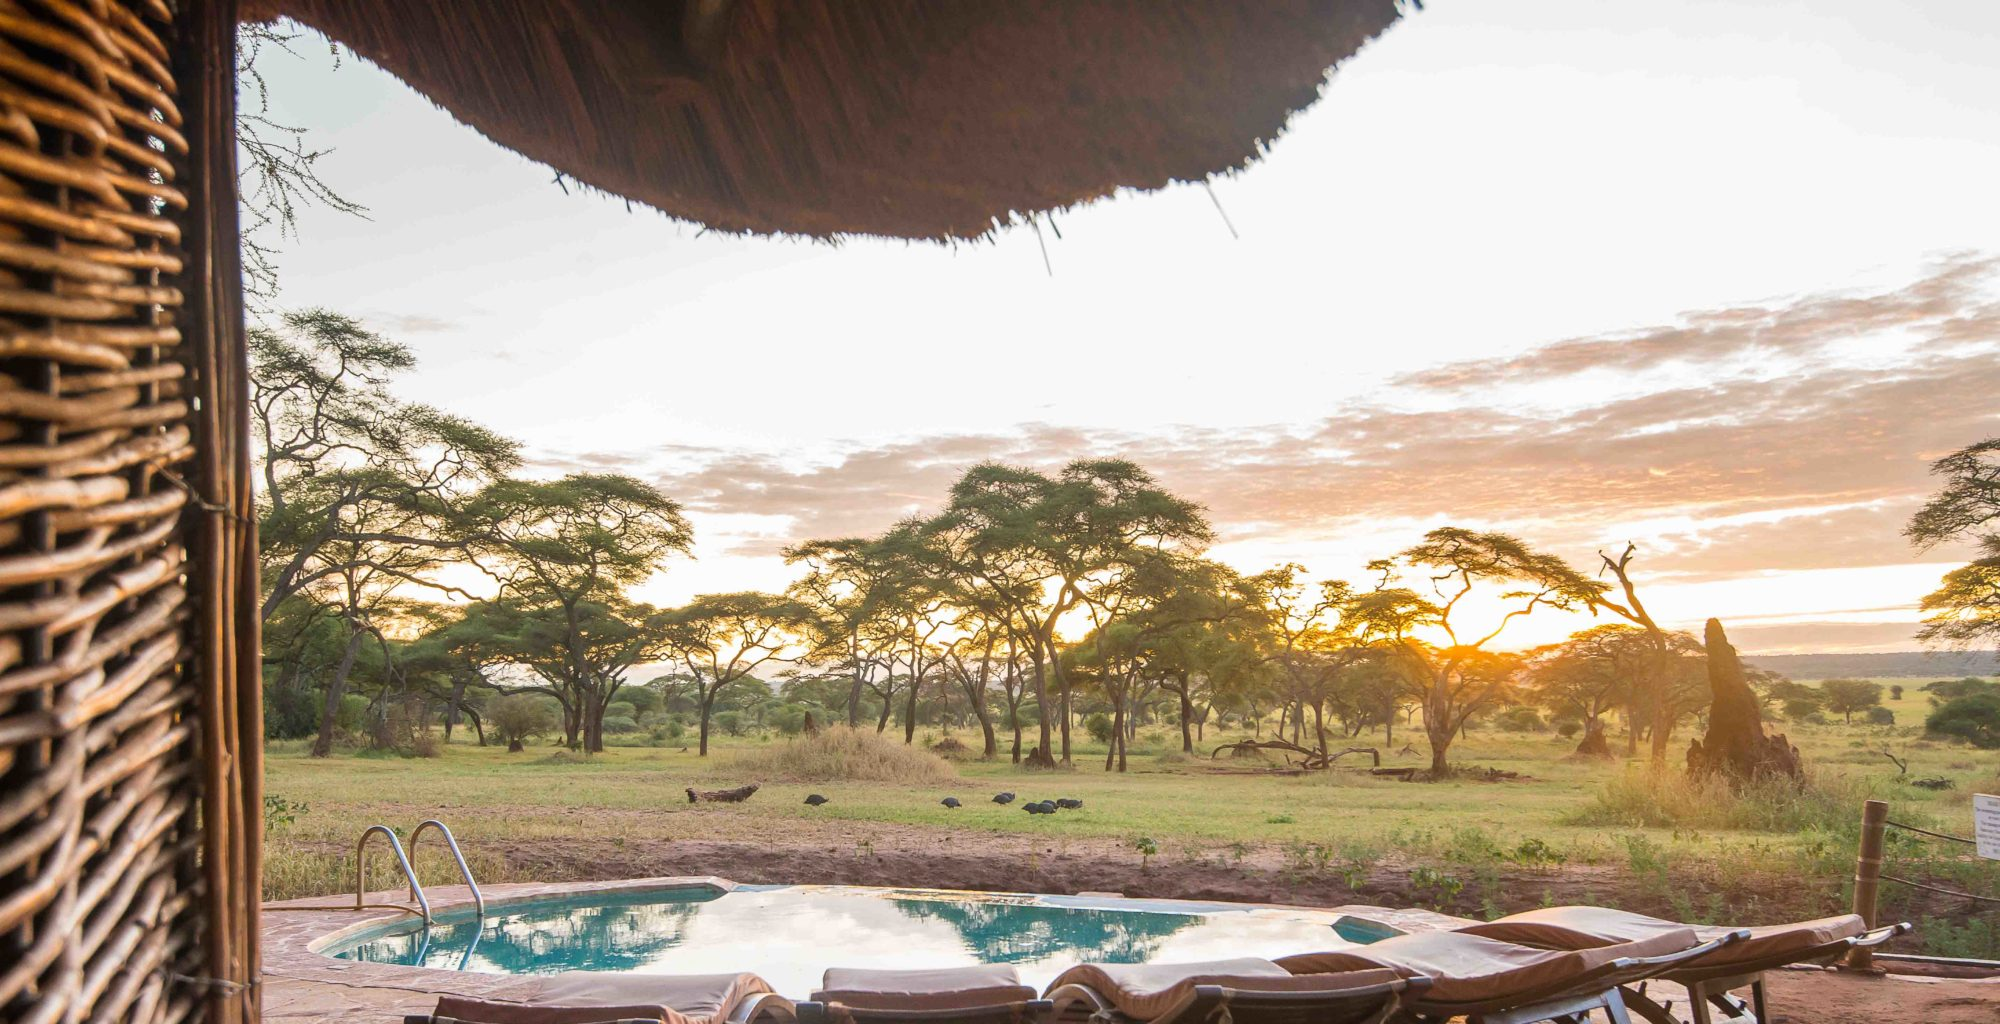 Swala Camp Tanzania Pool